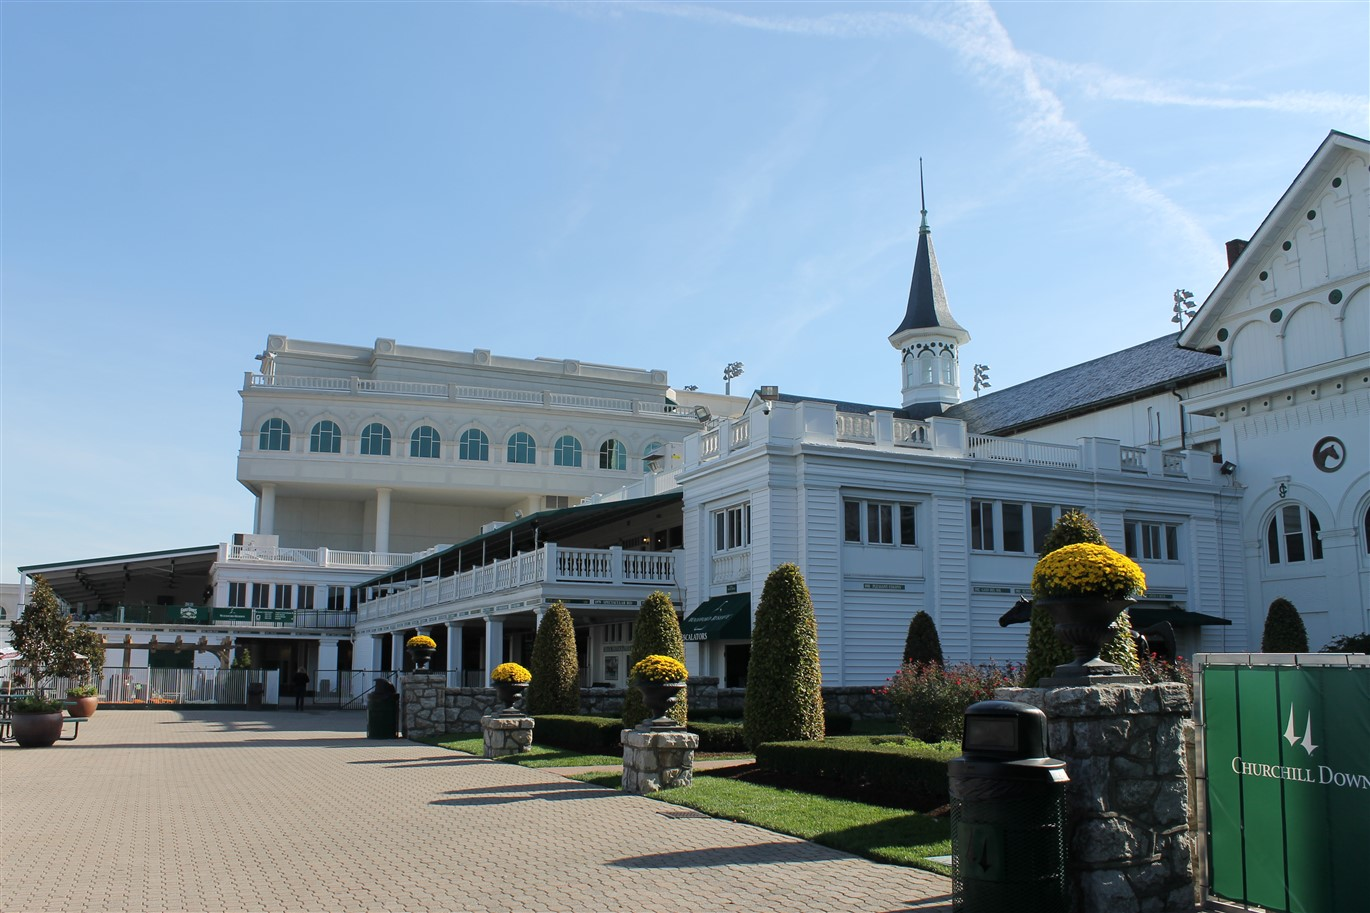 2013 10 27 90 Churchill Downs Louisville.jpg